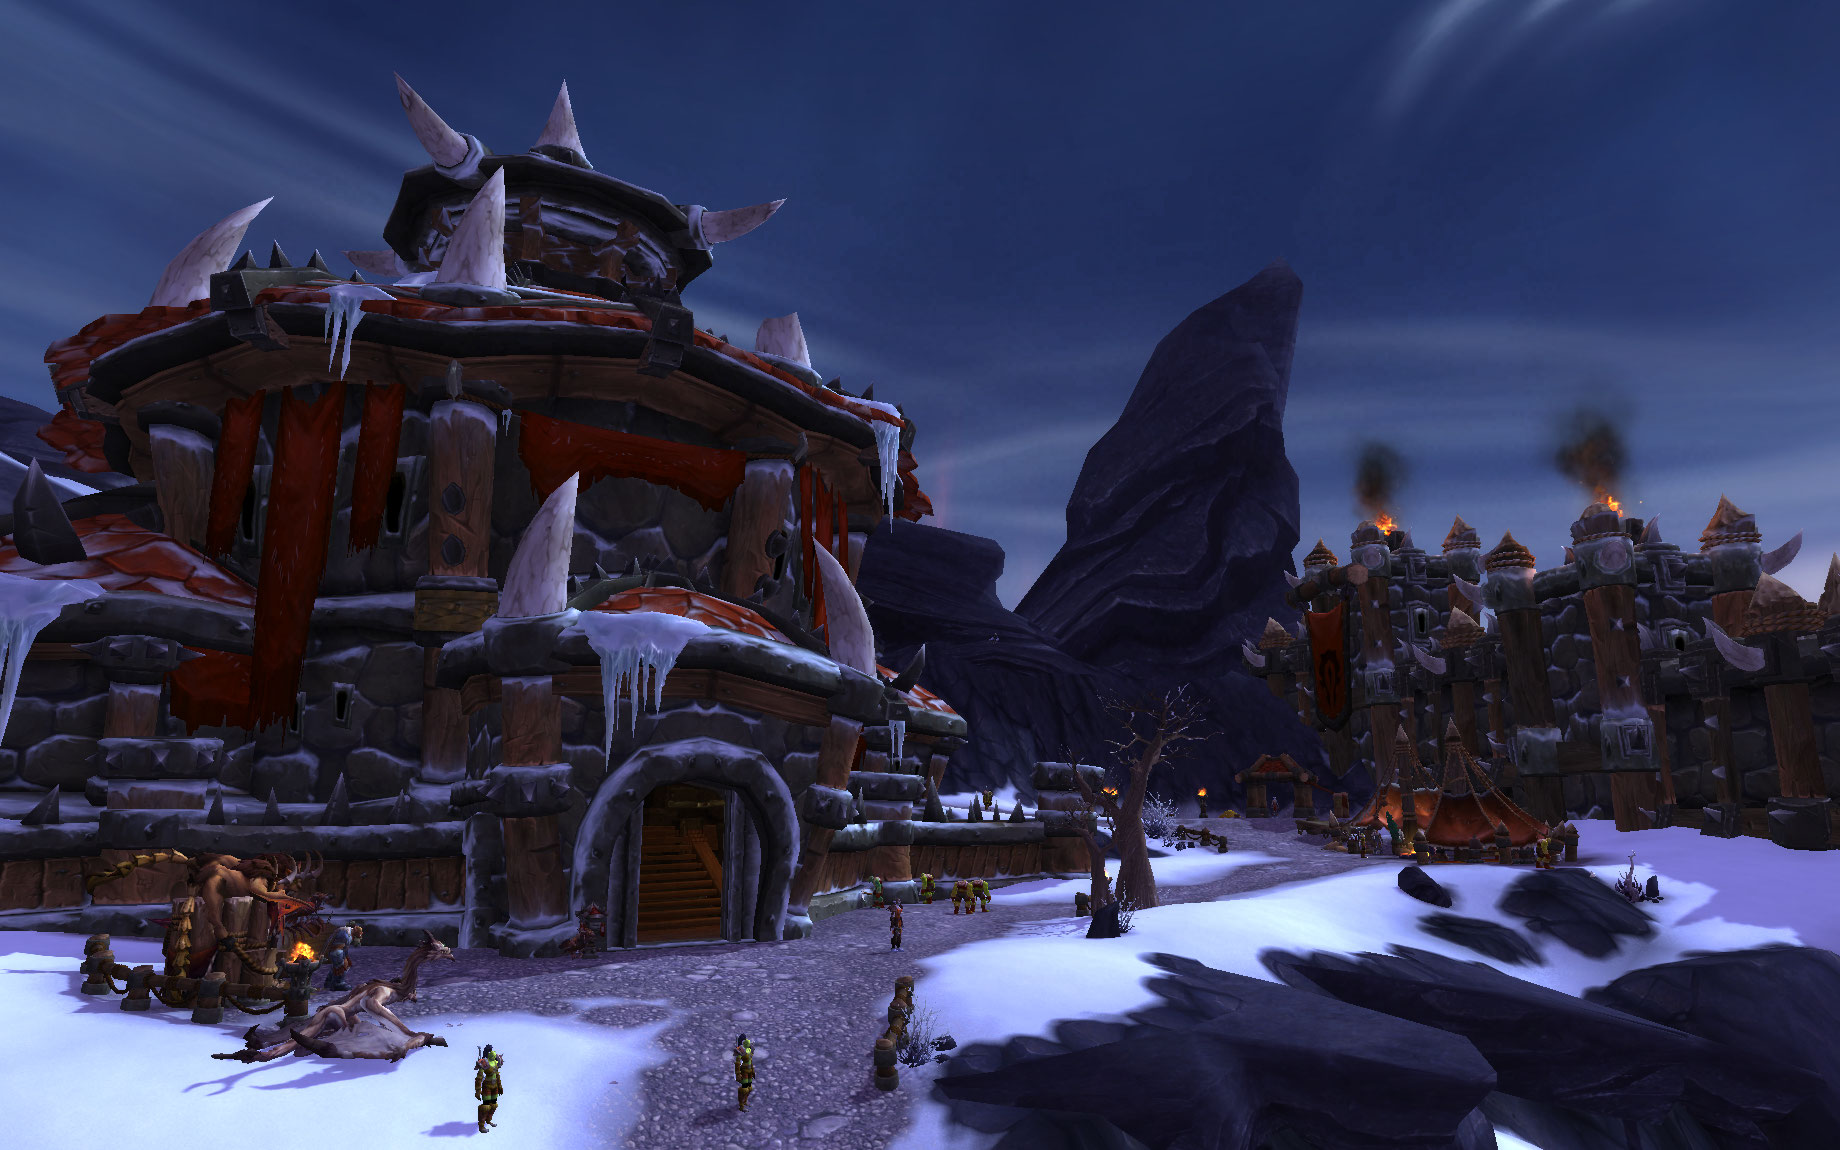 Deli-frost world of warcraft: warlords of draenor full game free.